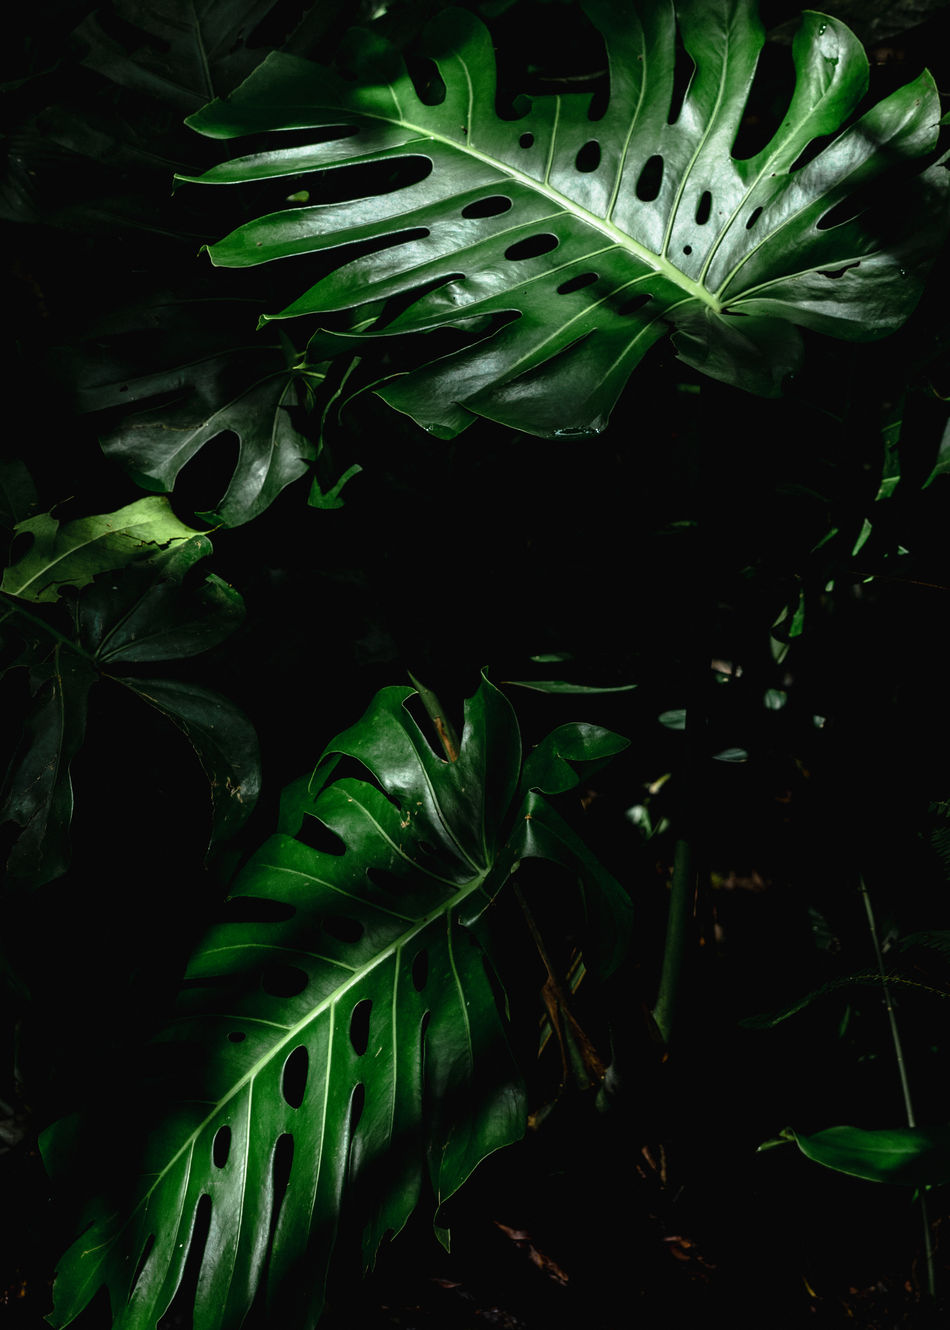 Abstract Photography Backgrounds Beauty In Nature Black Background Close-up Composition Constrast Fineartphotography Freshness Full Frame Green Color Growth Leaf Leaves Light And Shadow Nature Nature_collection Night No People Outdoors Plant Tree Xilitla